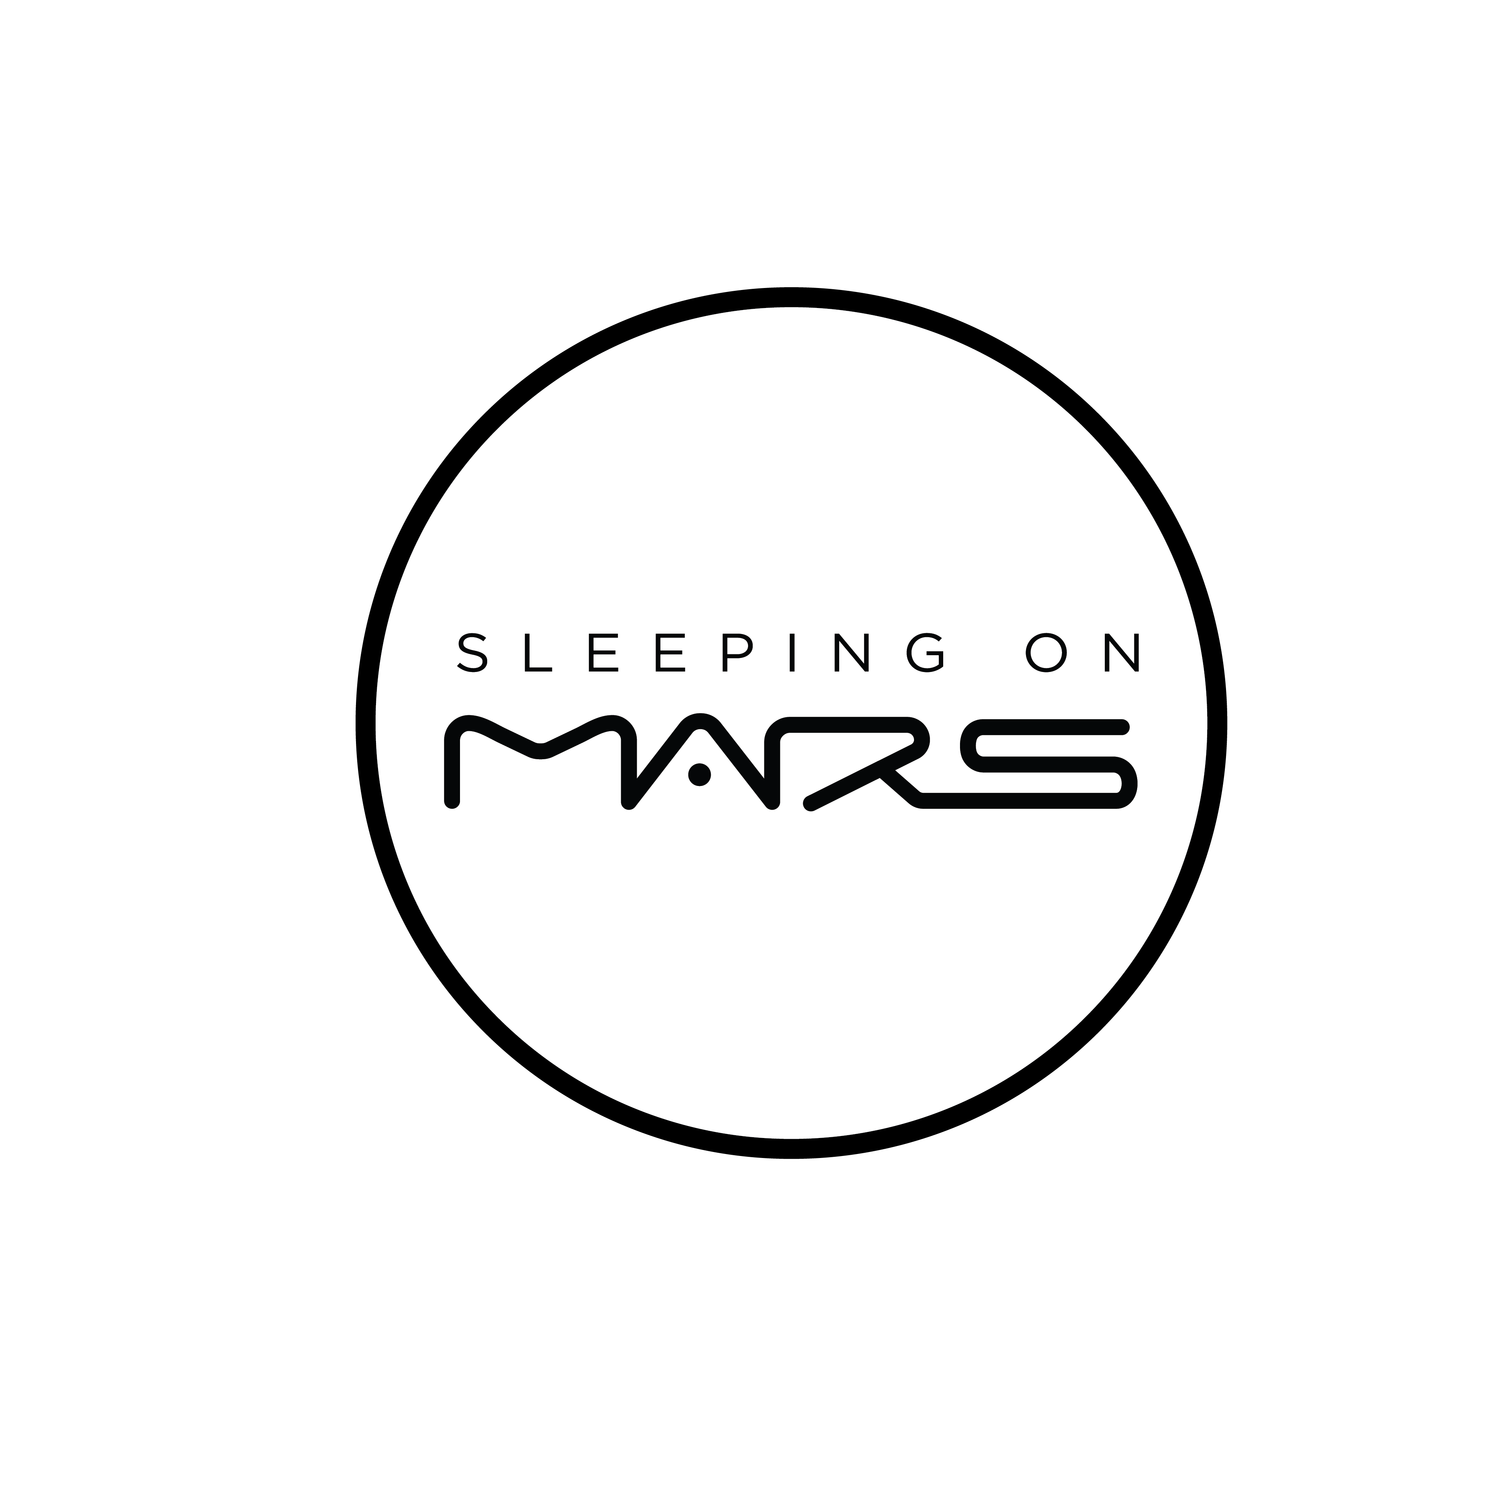 Sleeping on Mars